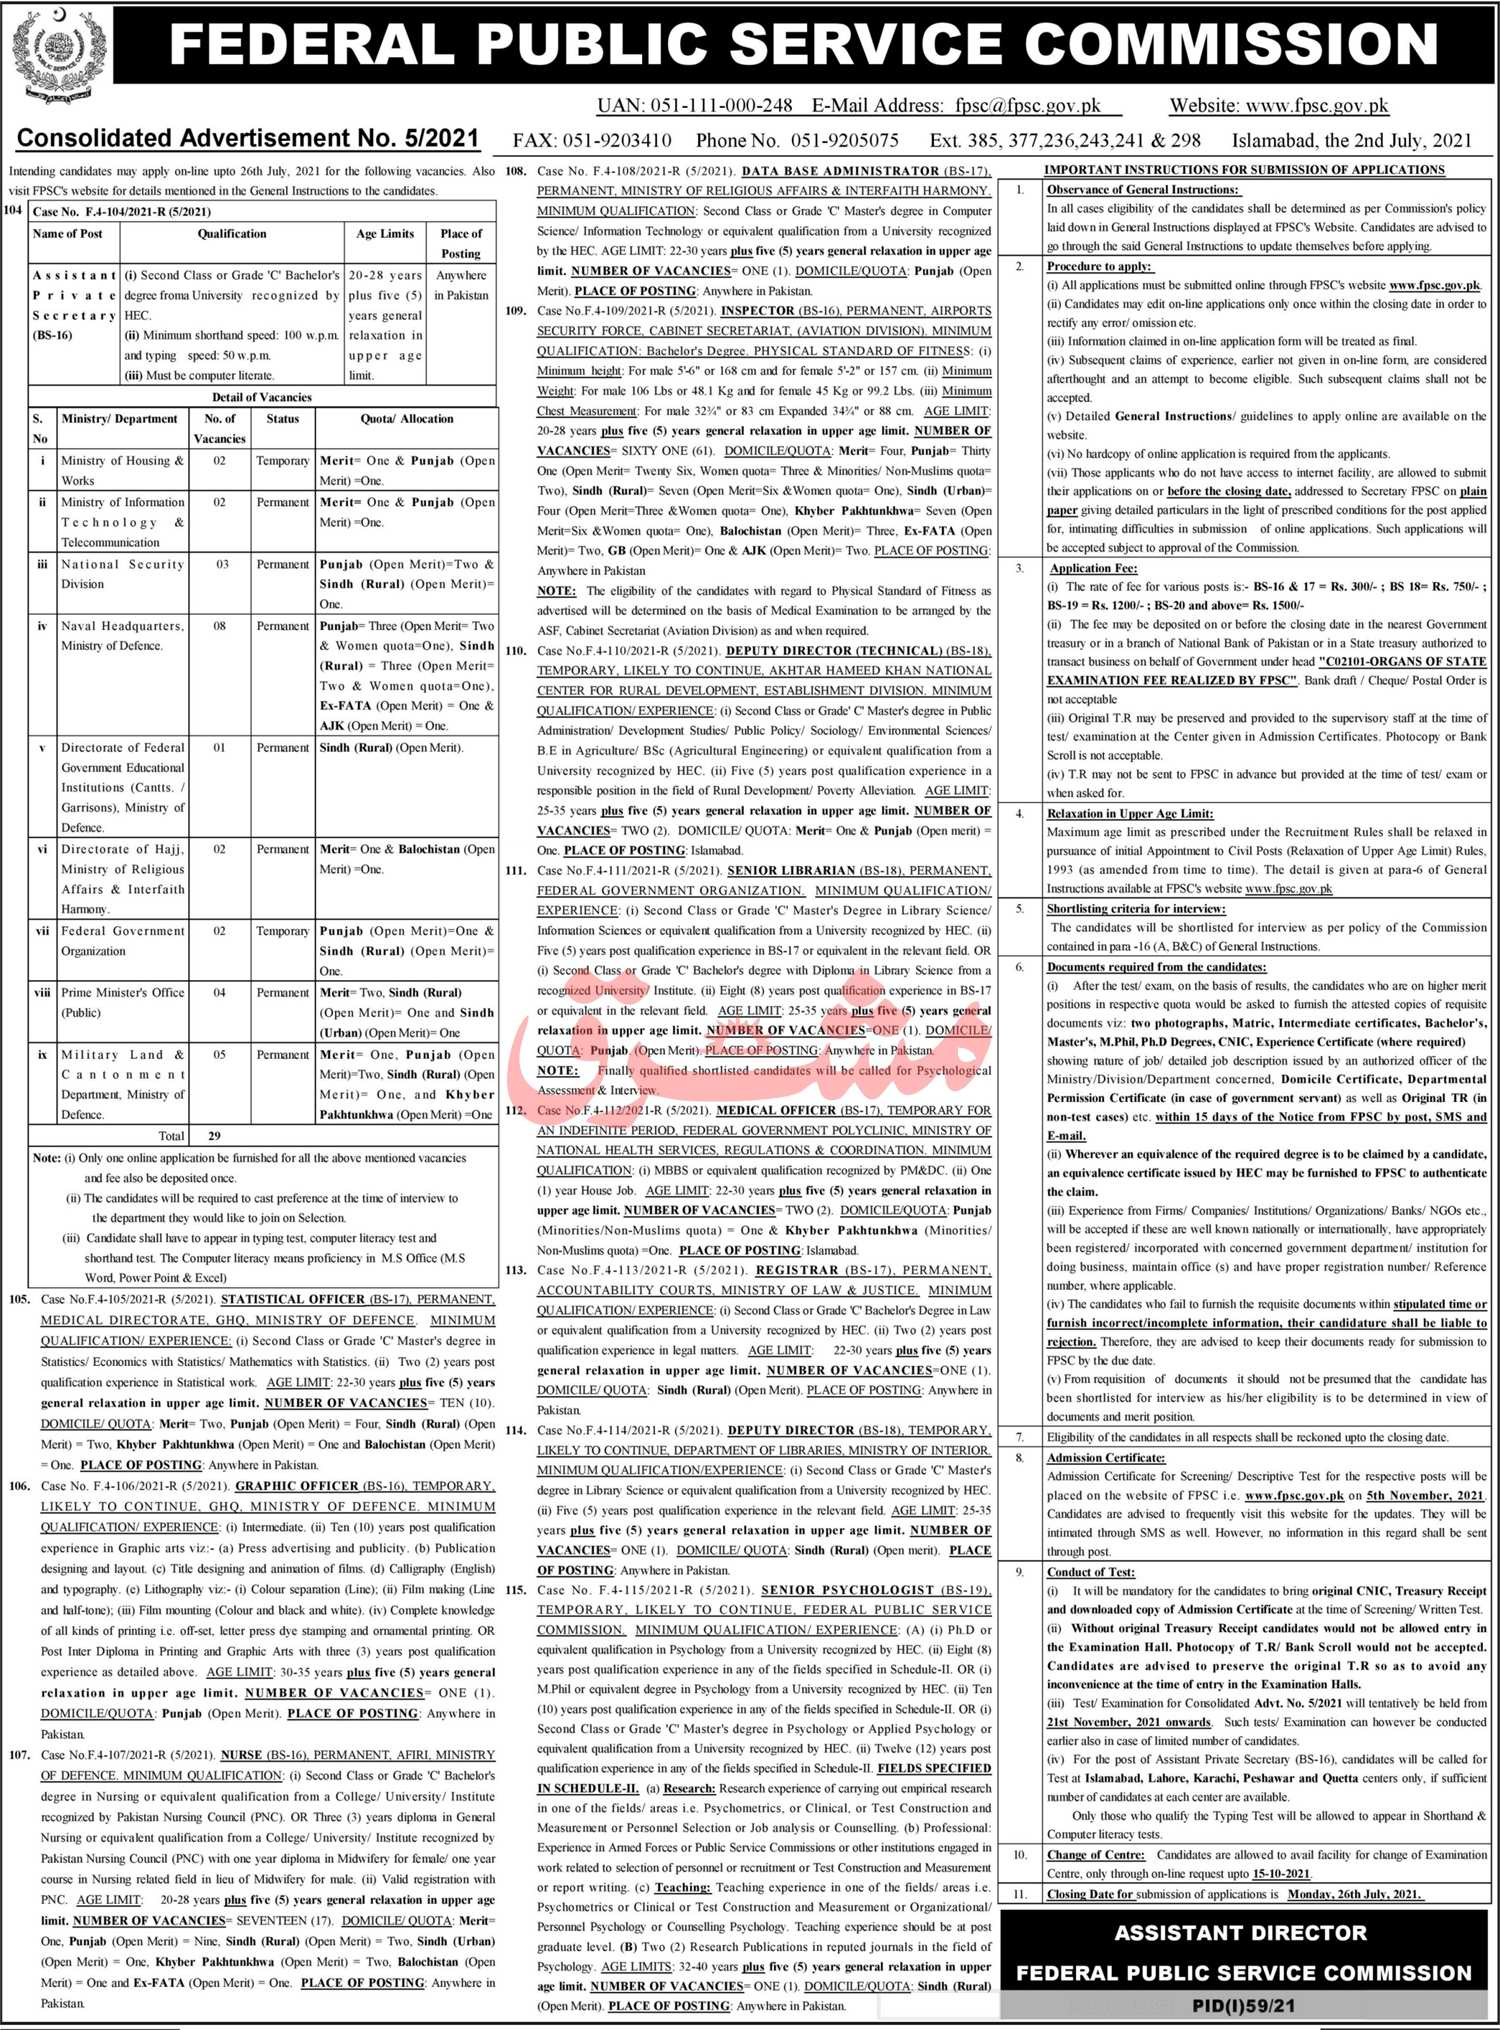 FPSC Federal Public Service Commission Consolidated Advertisement 052021 Apply Online